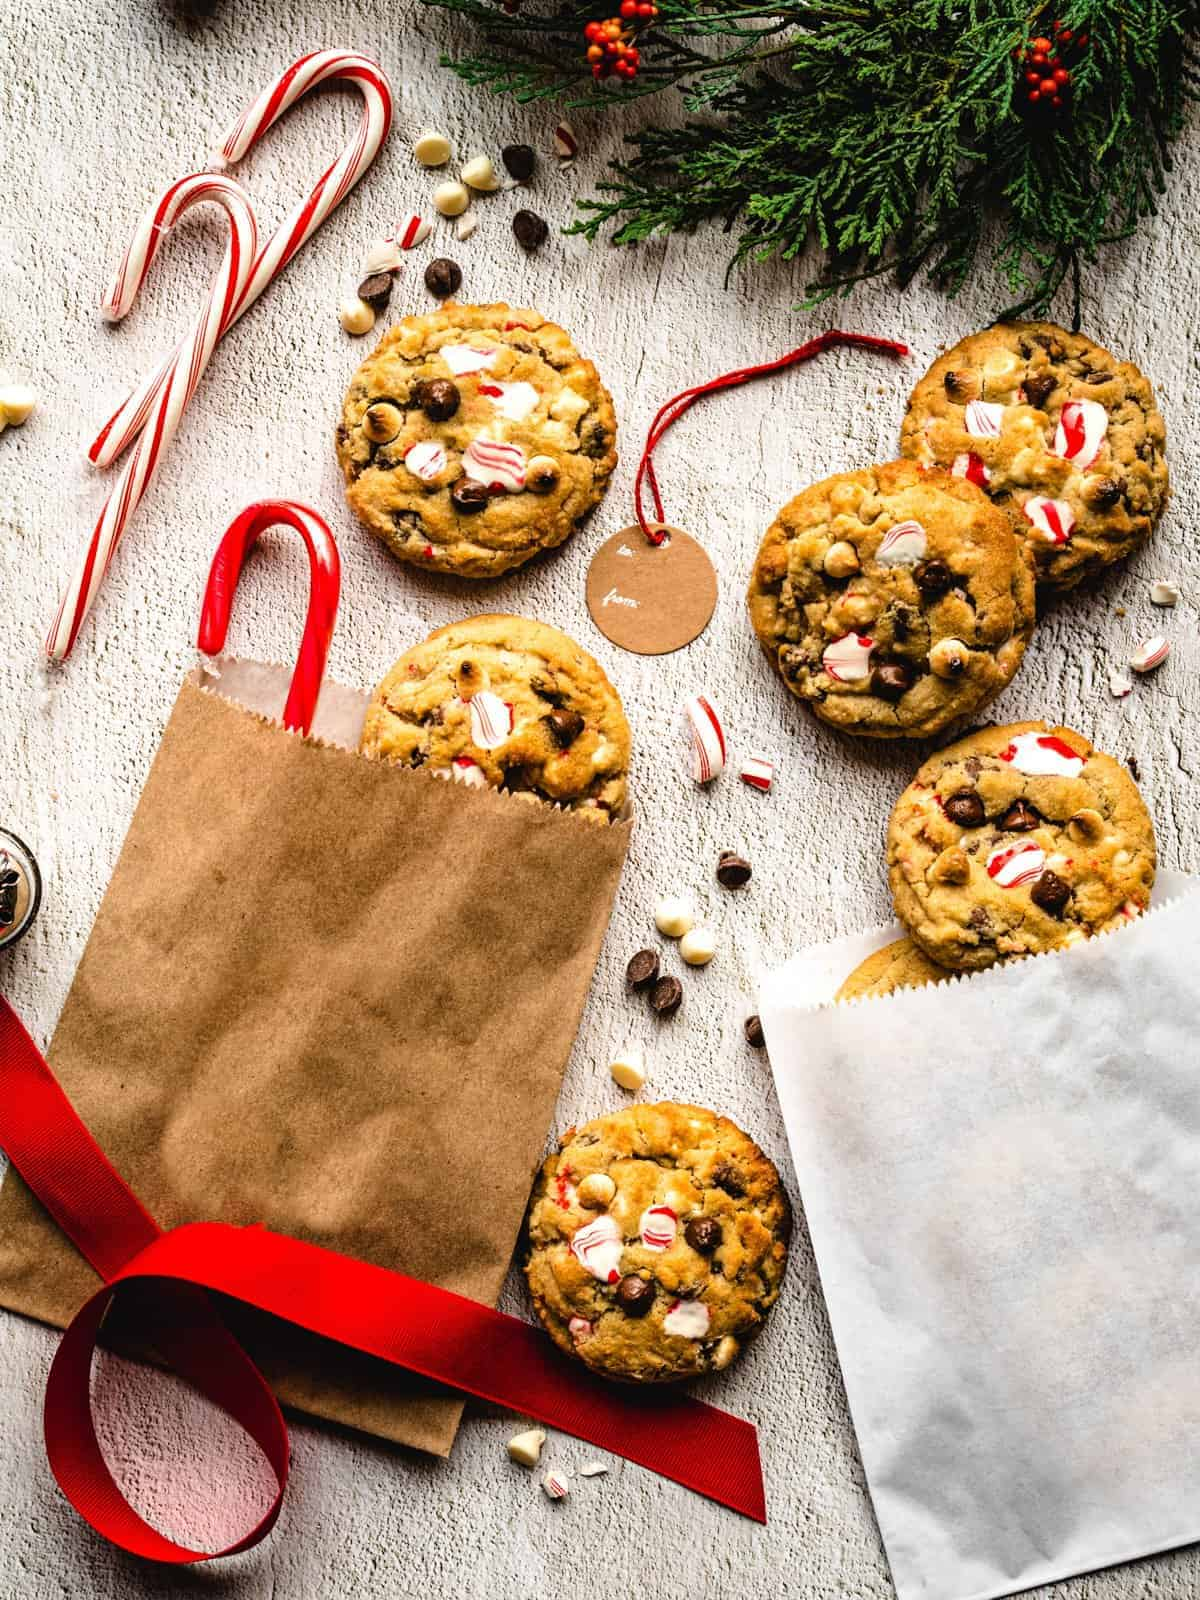 holiday decorations surrounding white chocolate peppermint chocolate chip cookies